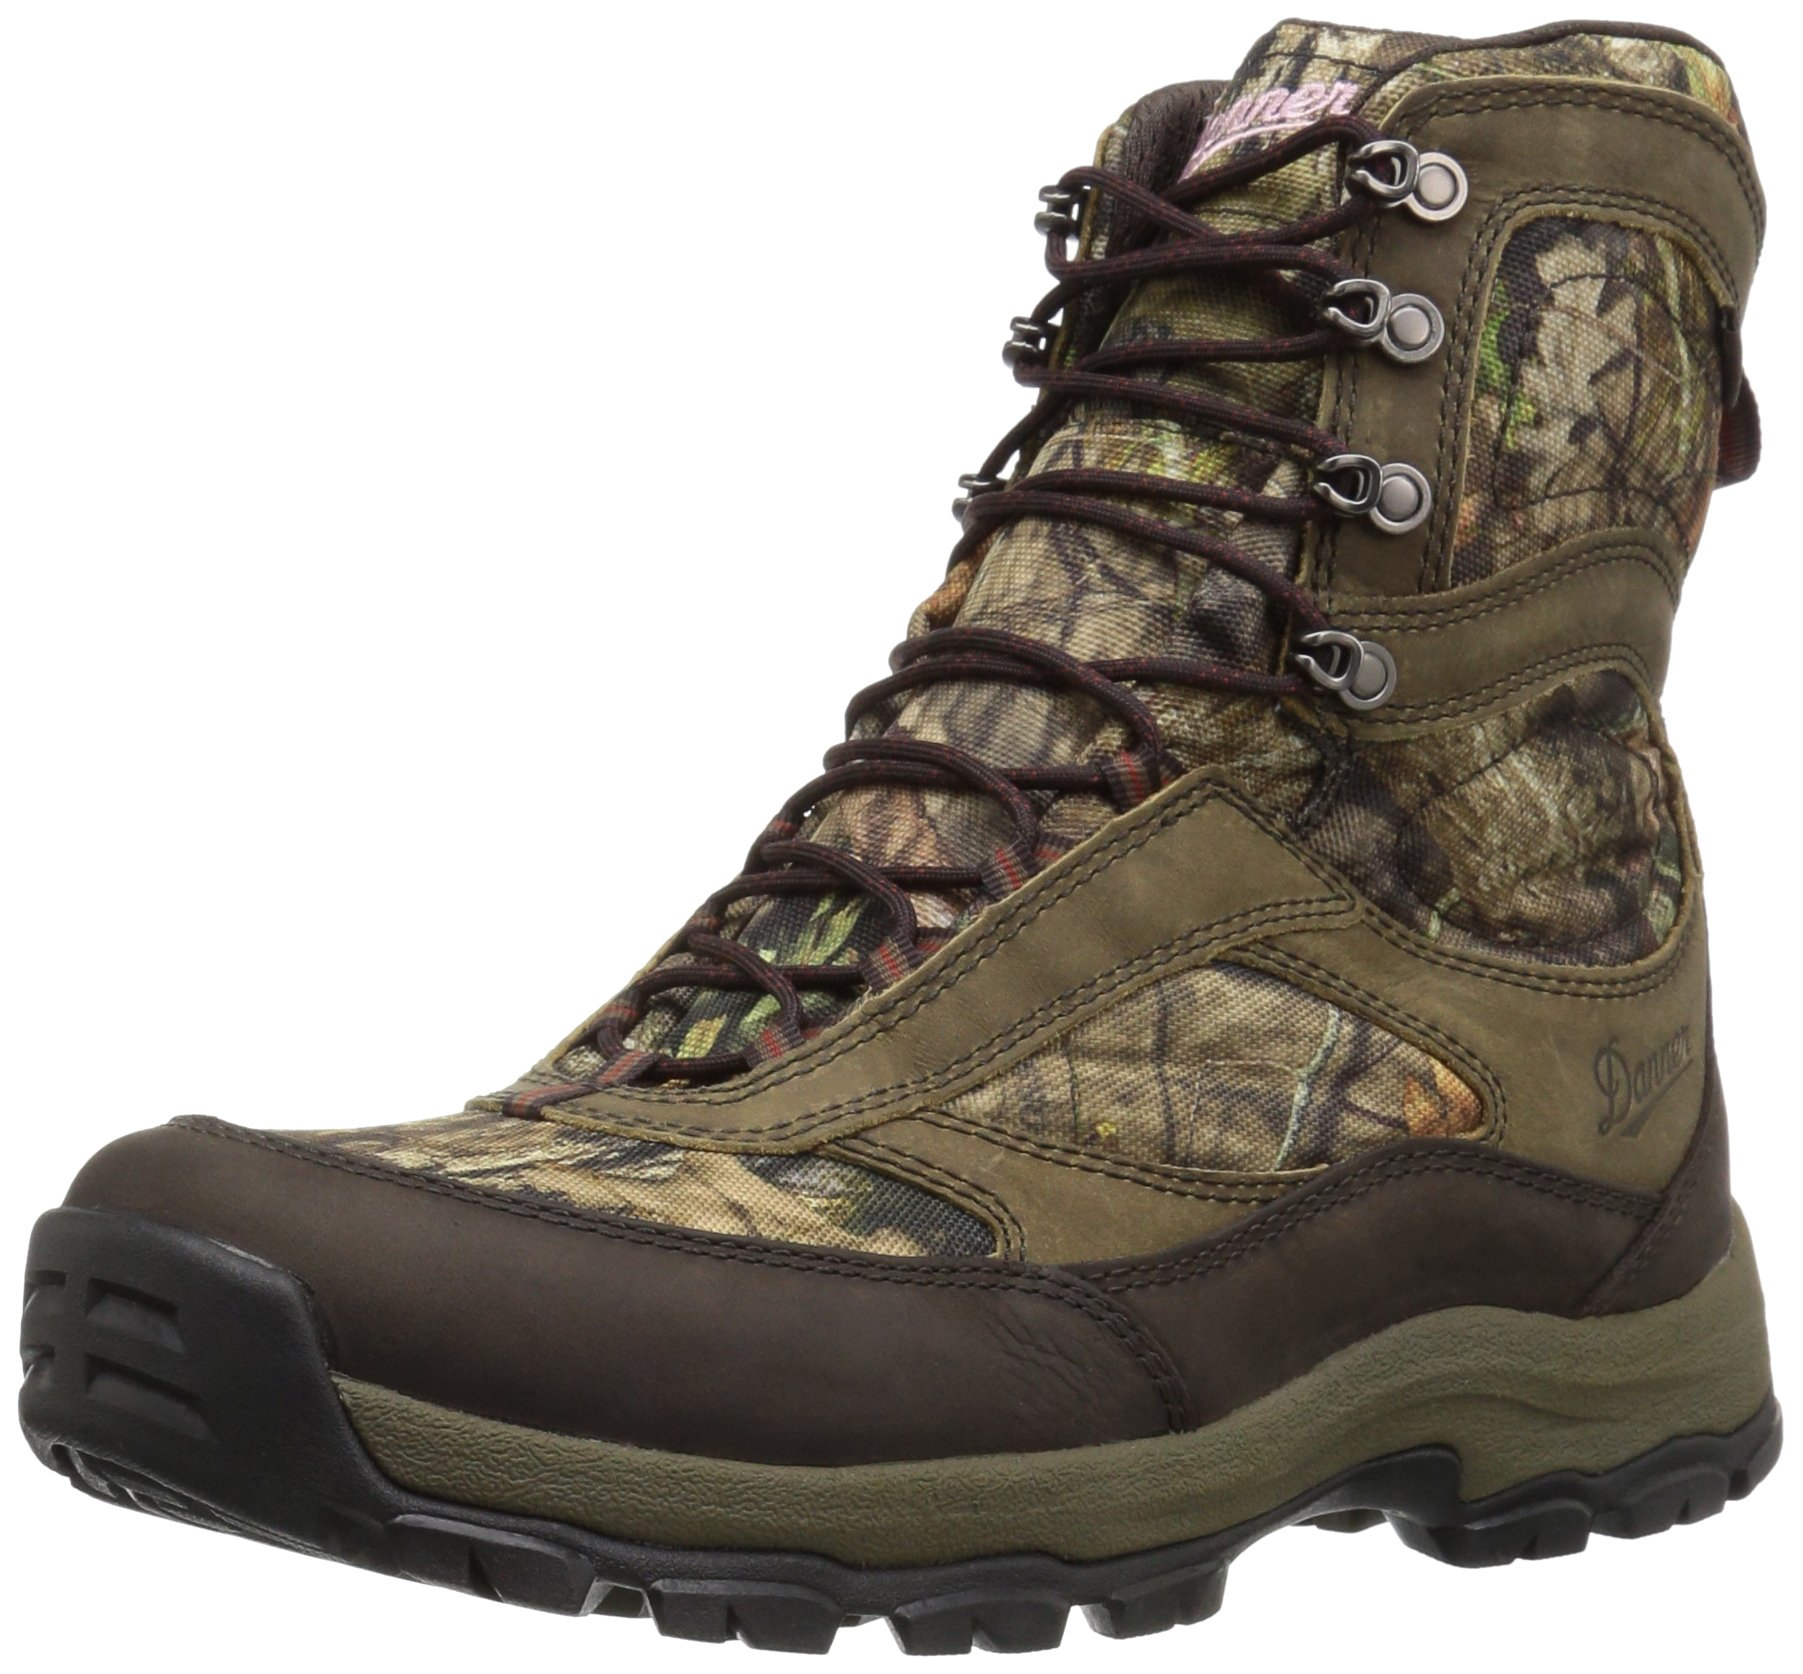 Danner Women's High Ground Hunting Shoes, Mossy Oak Break up Country, 5 M US